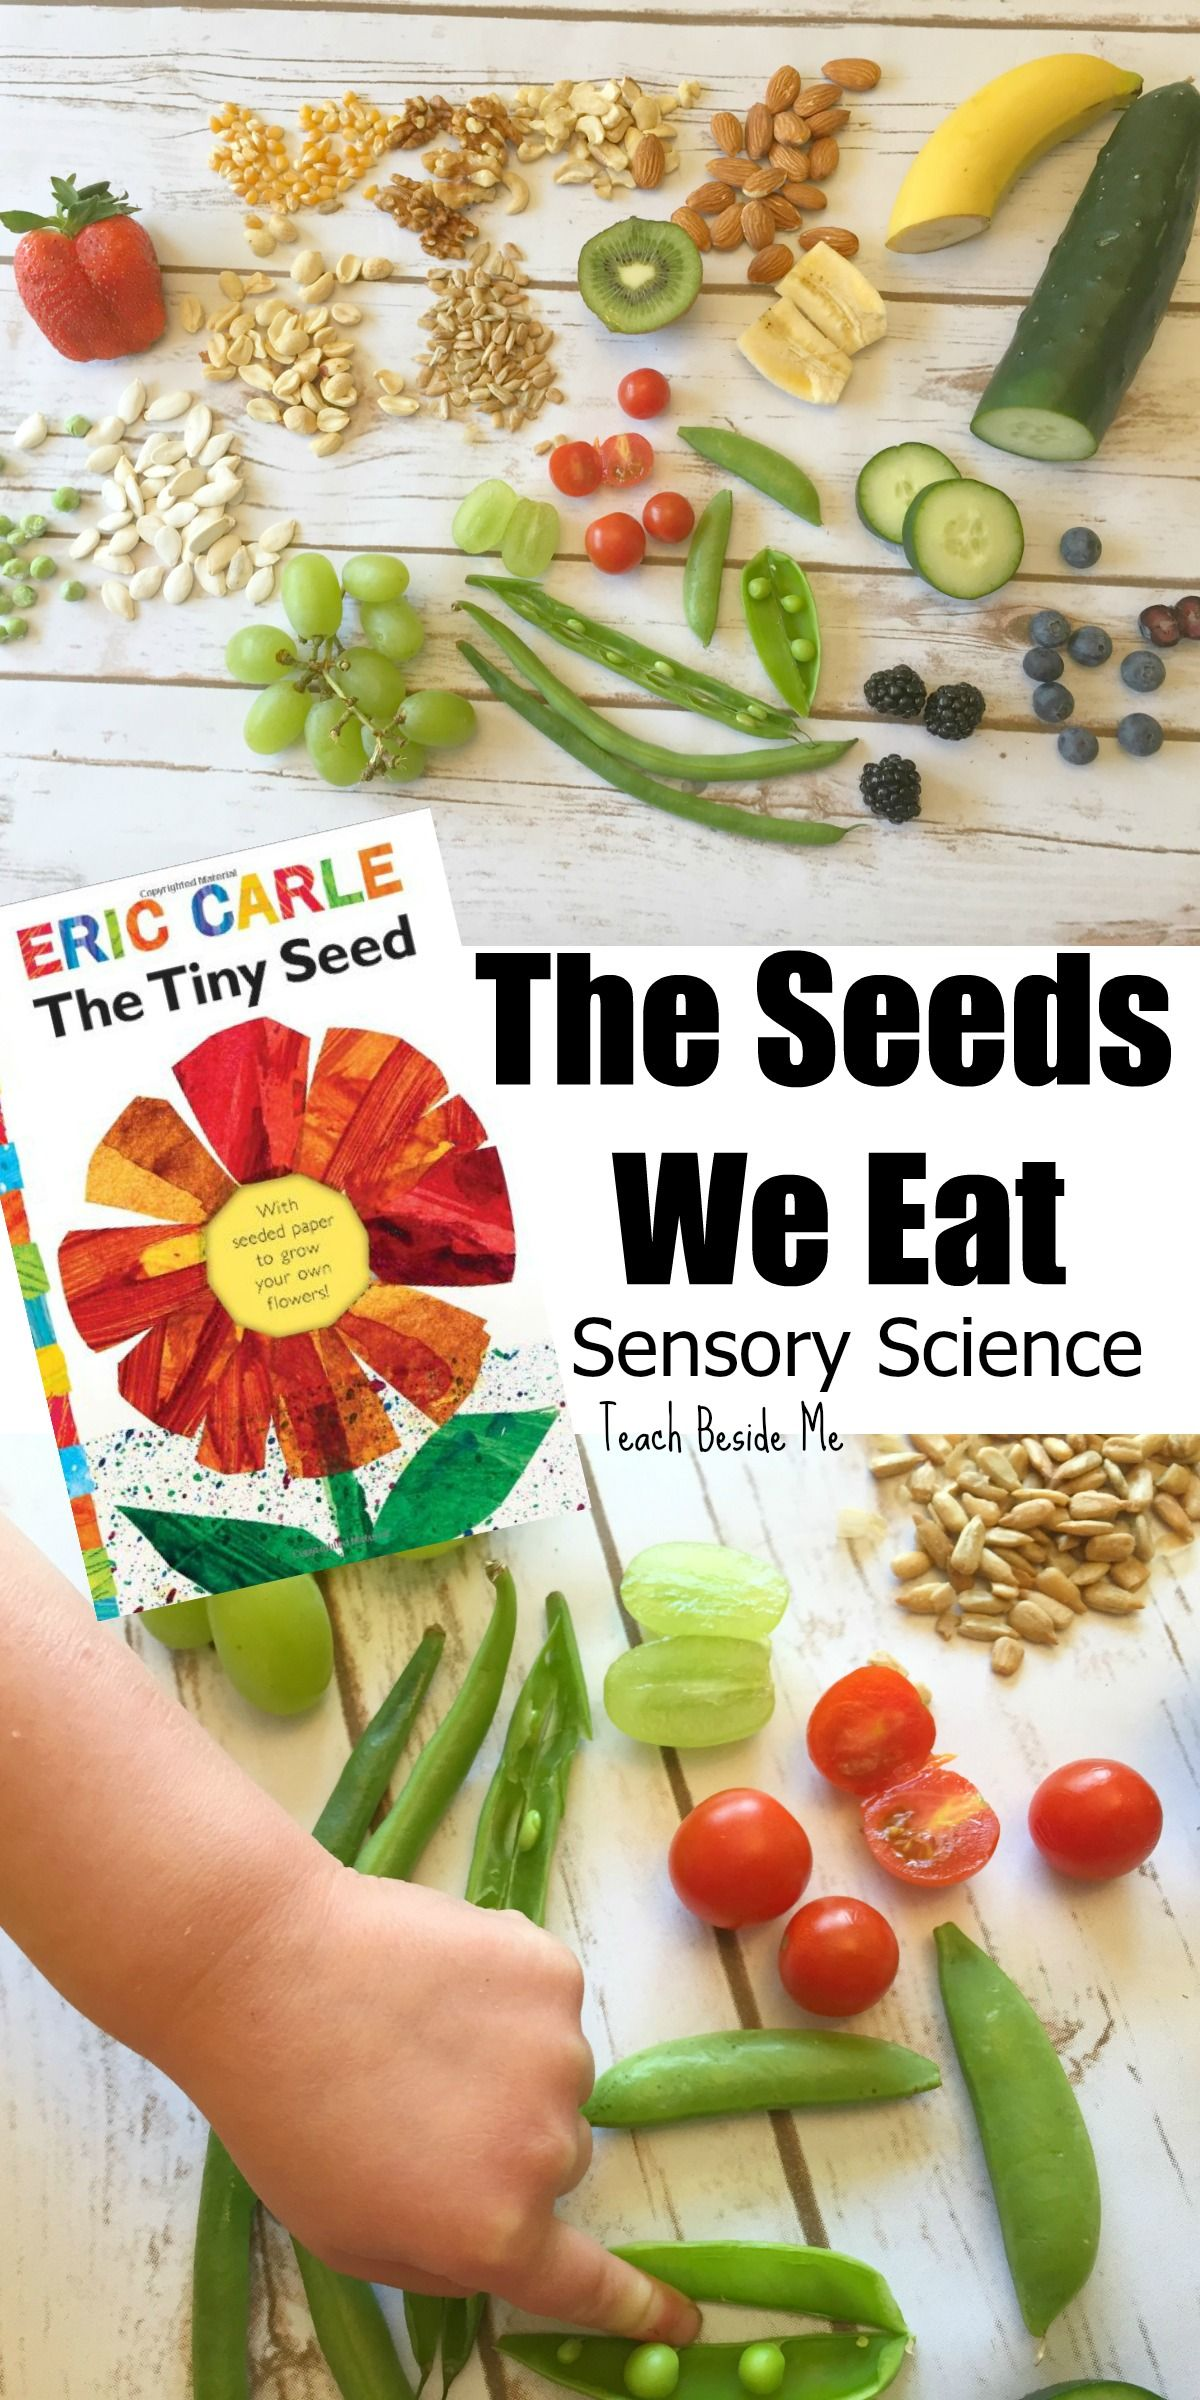 The Seeds We Eat Nature Sensory Science For Kids Great With Eric Carle S Tiny Seed Book